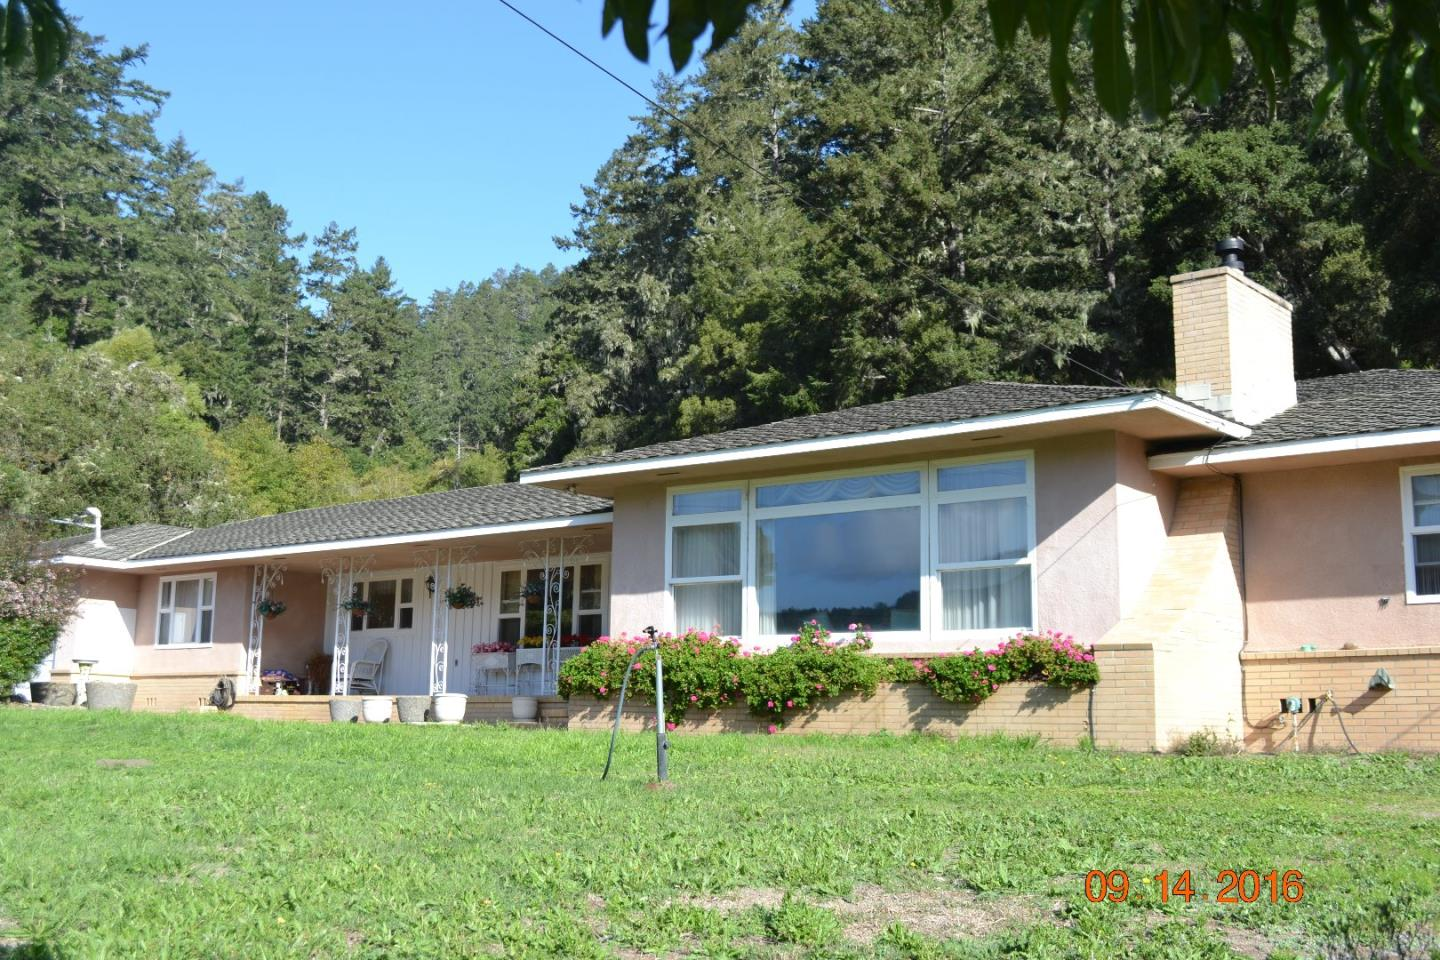 4931 Pescadero Creek Road, PESCADERO, CA 94060